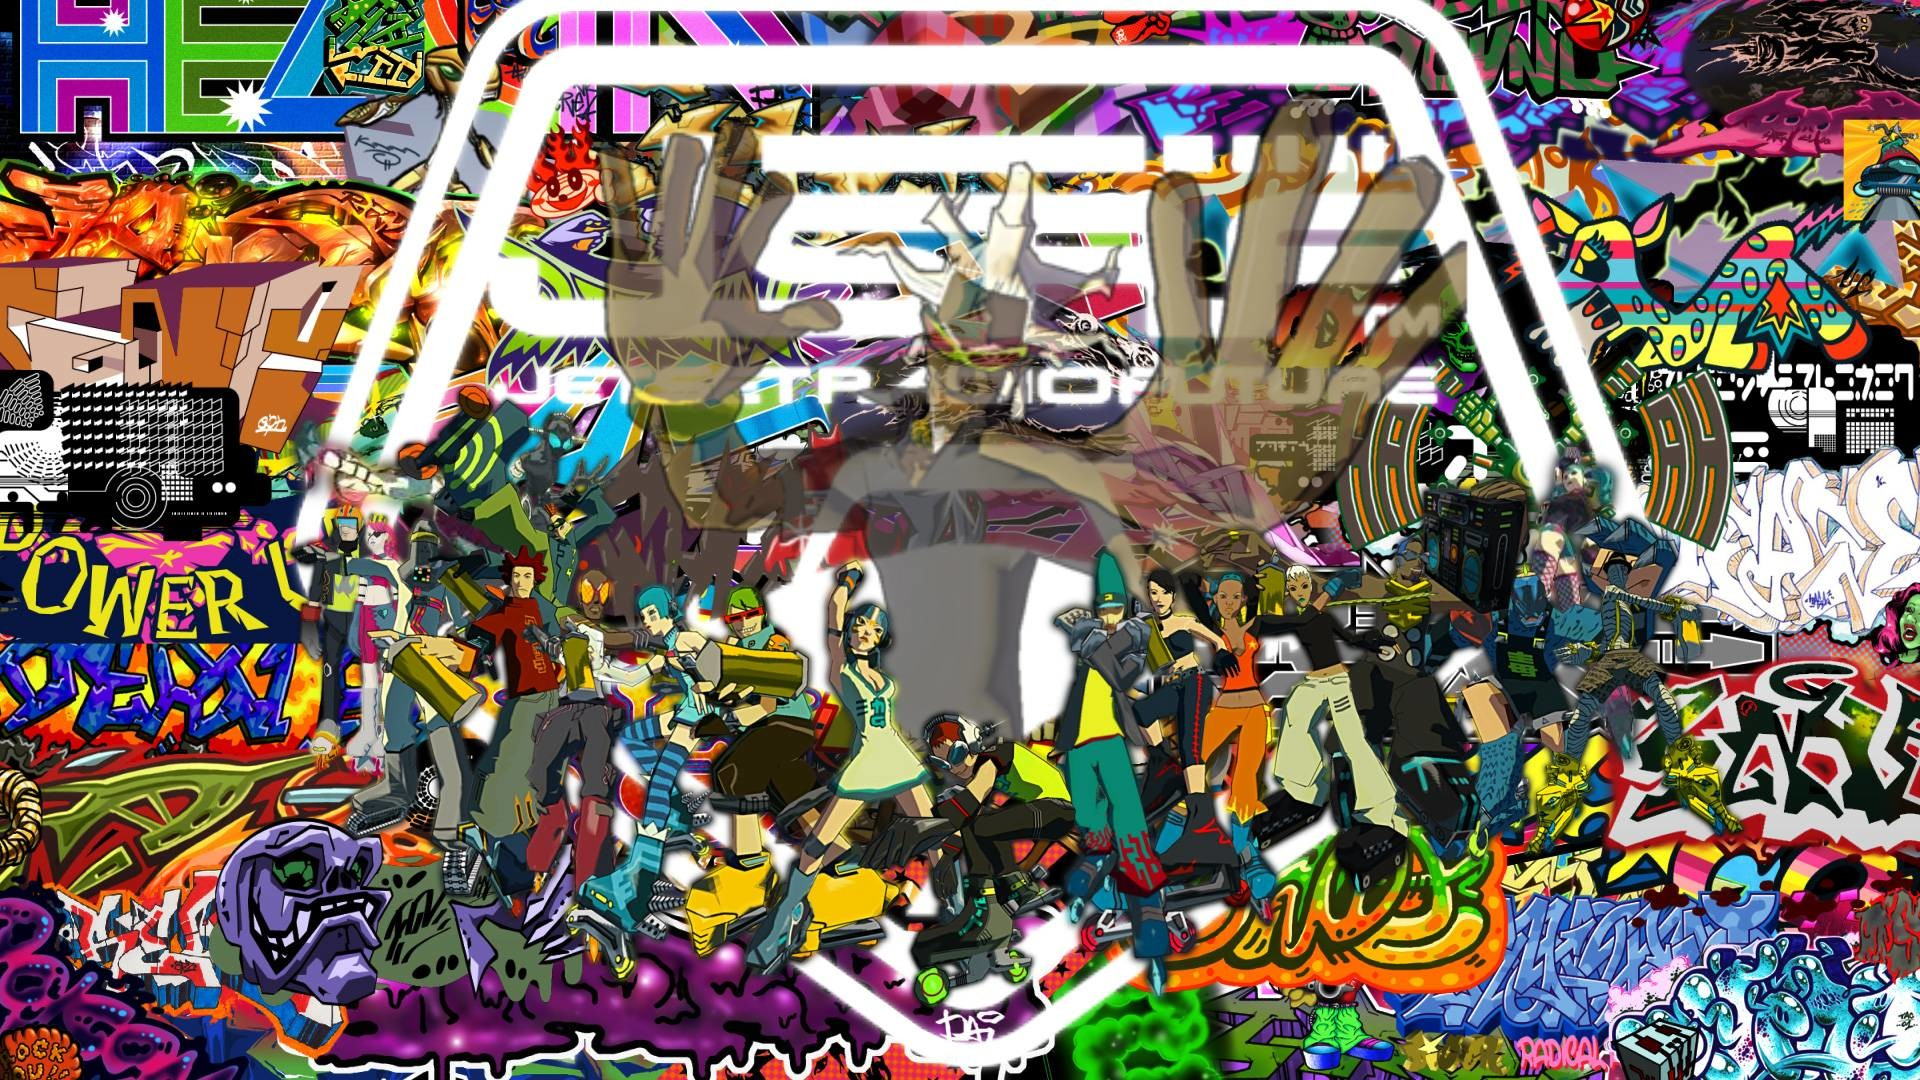 1920x1080 Jet Set Radio Future by FARetis on DeviantArt